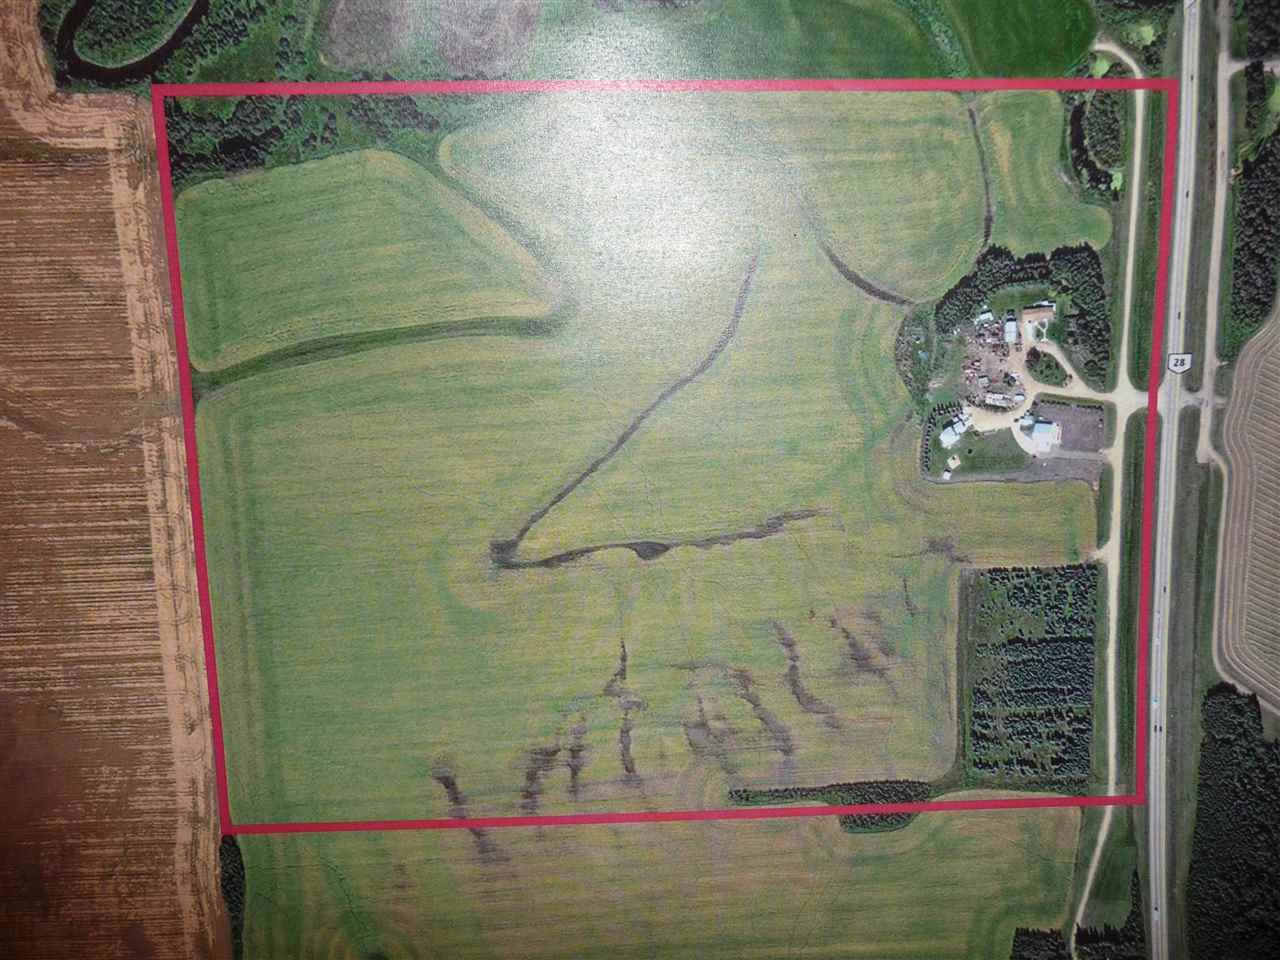 GREAT PIECE OF LAND RIGHT ON HIGHWAY 28 WITH A SERVICE ROAD OFF MAIN HIGHWAY.ONLY 5 1/2 MILES FROM NORTH END CITY LIMITS.IT IS CURRENTLY BEING  FARMED.GST APPLICABLE